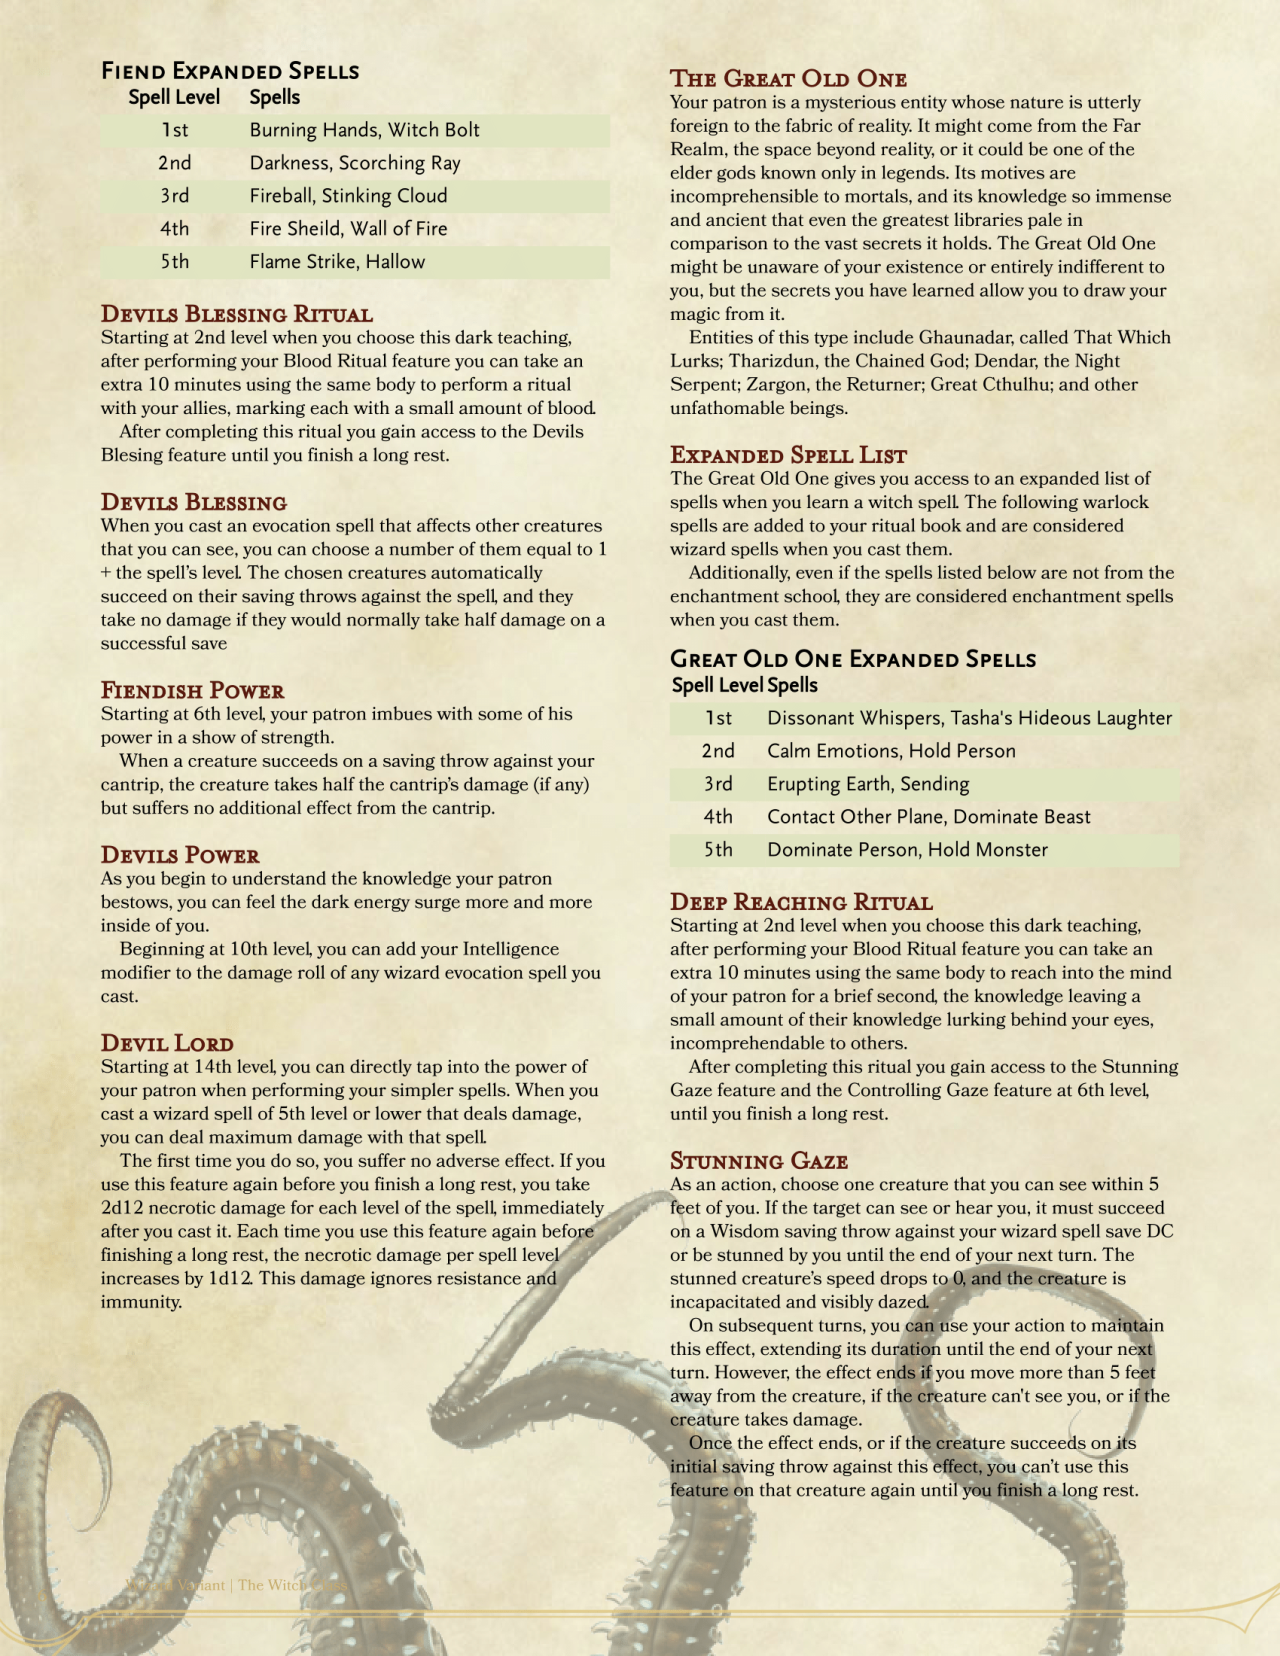 xanathar guide to everything reddit